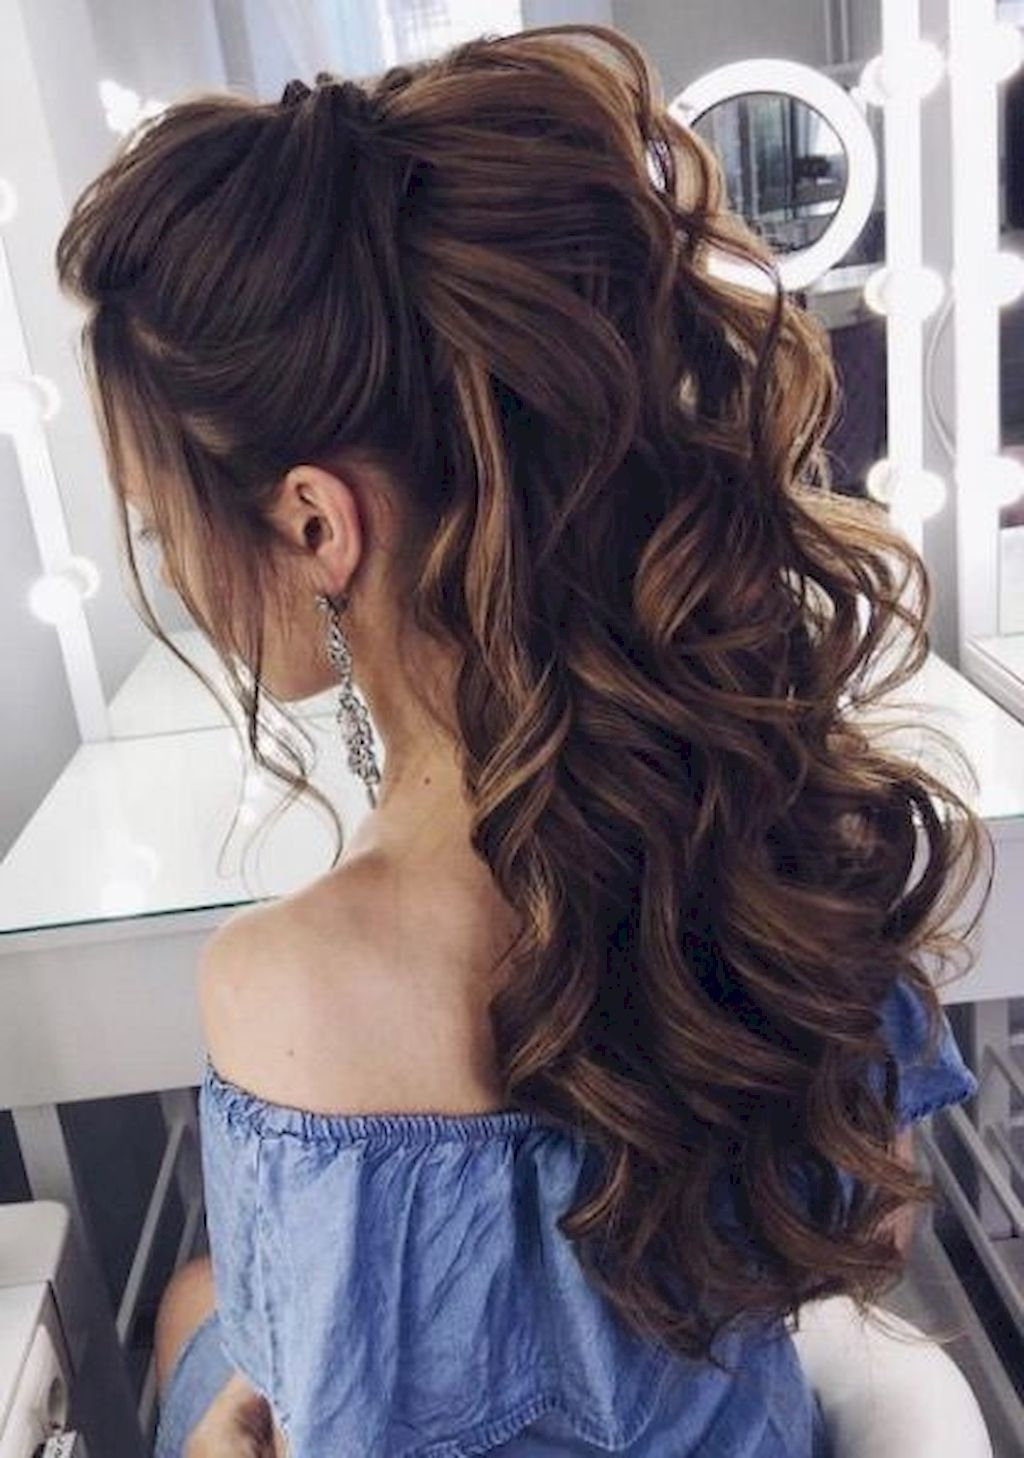 96 Bridal Wedding Hairstyles For Long Hair That Will Inspire With Famous Wedding Hairstyles For Long Layered Hair (Gallery 1 of 15)